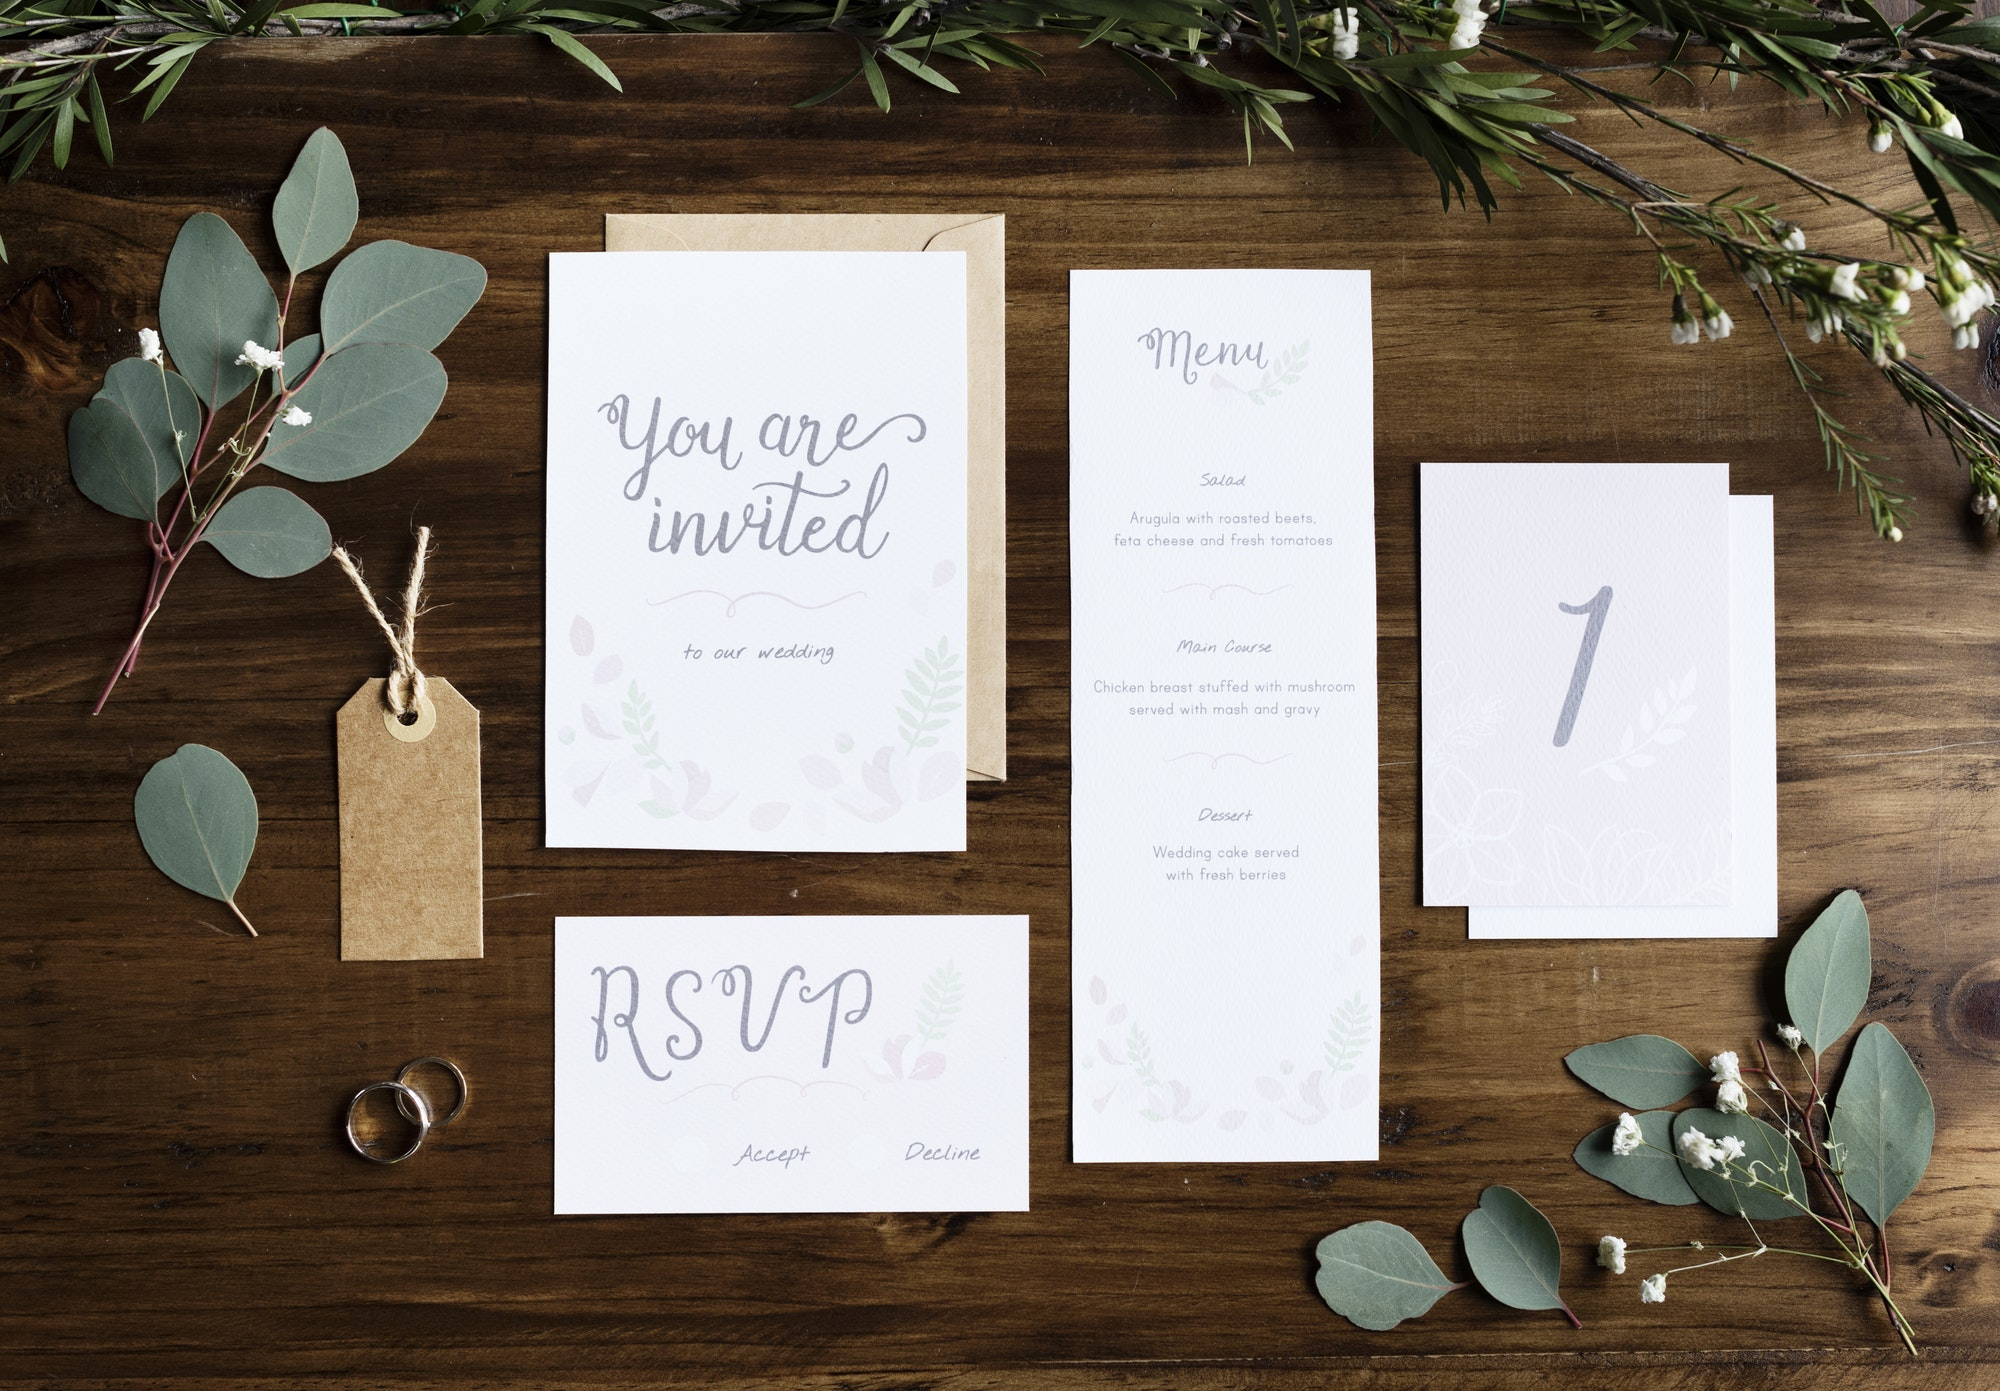 Wedding Invitations – How to Make Your Own